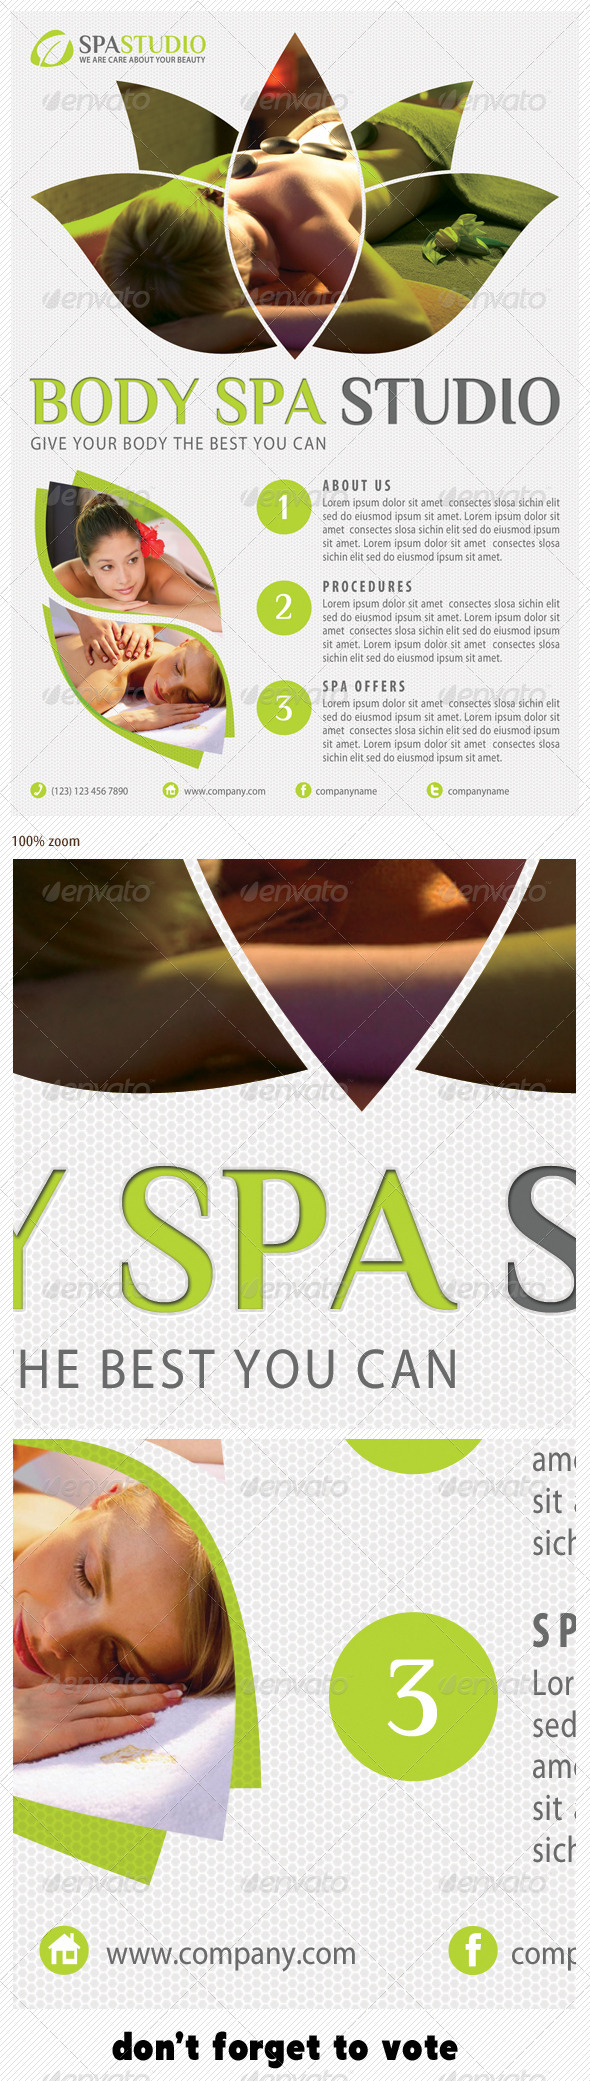 Spa Studio Flyer 12 - Holidays Events